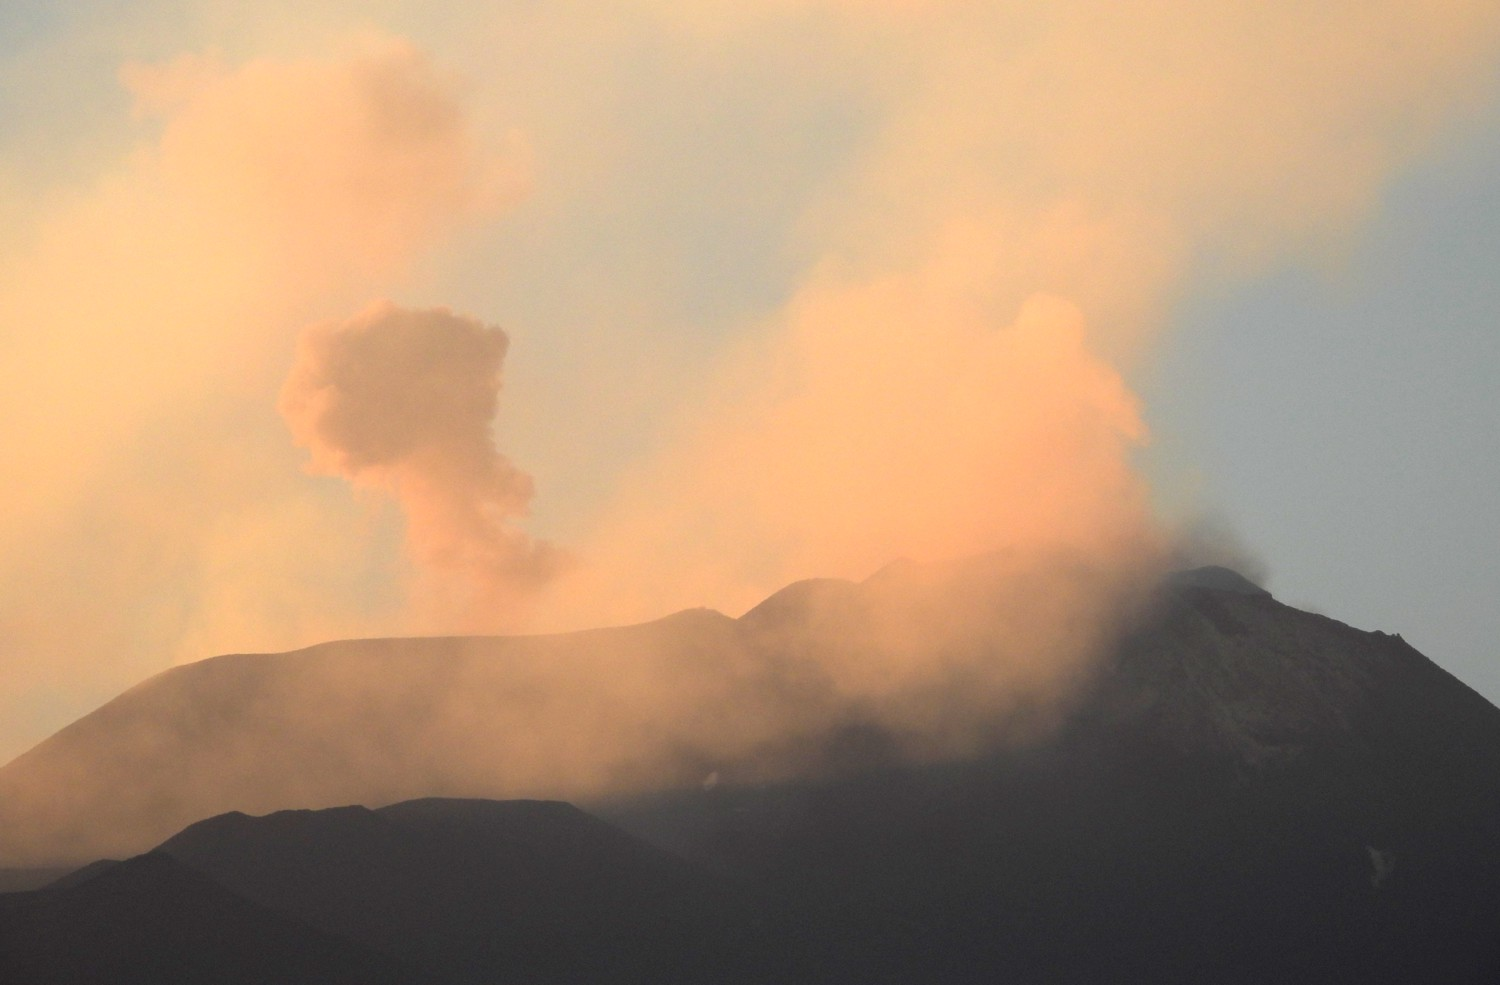 Ash emissions from Etna's Voragine on 13 June evening (image: INGVvulcani / facebook)